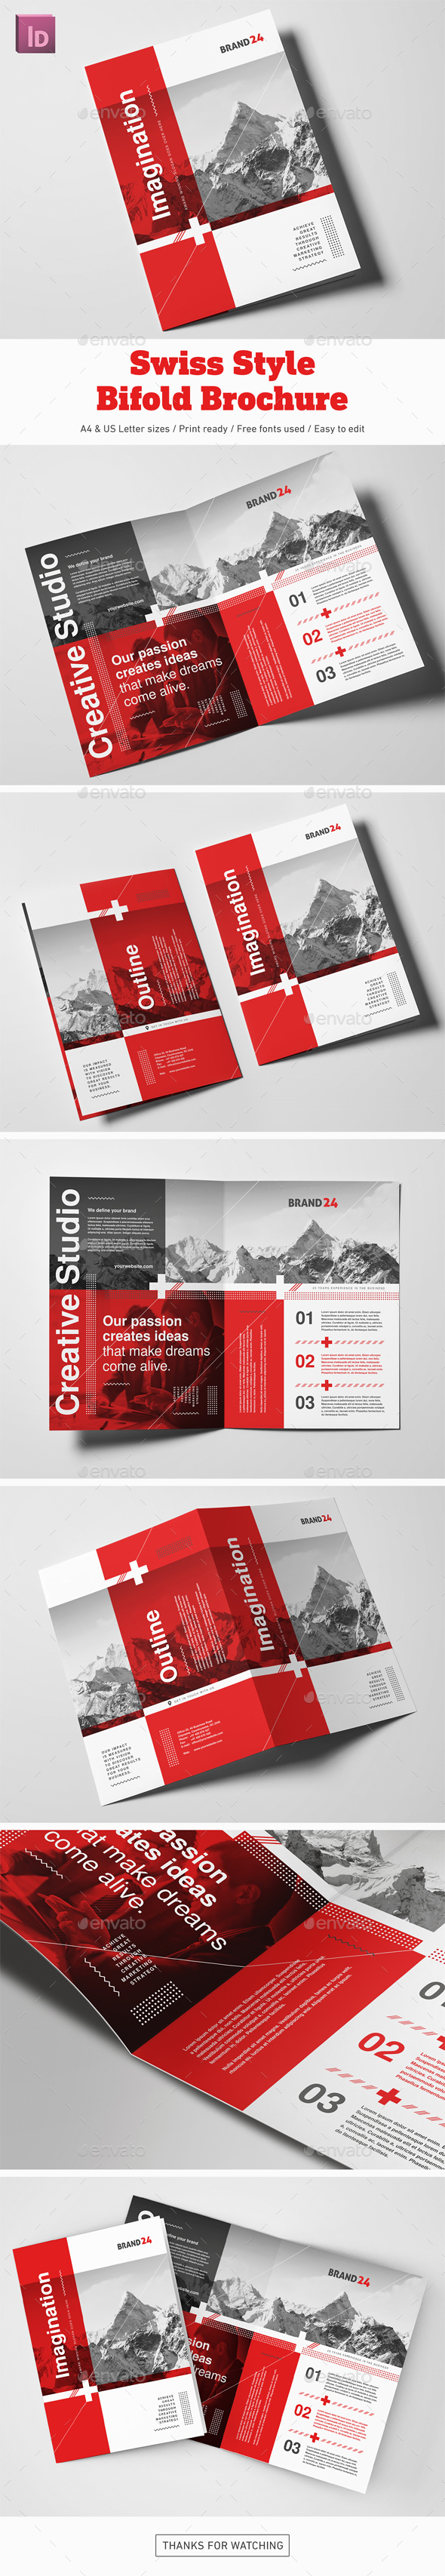 Swiss Style Bifold Brochure - Corporate Brochures